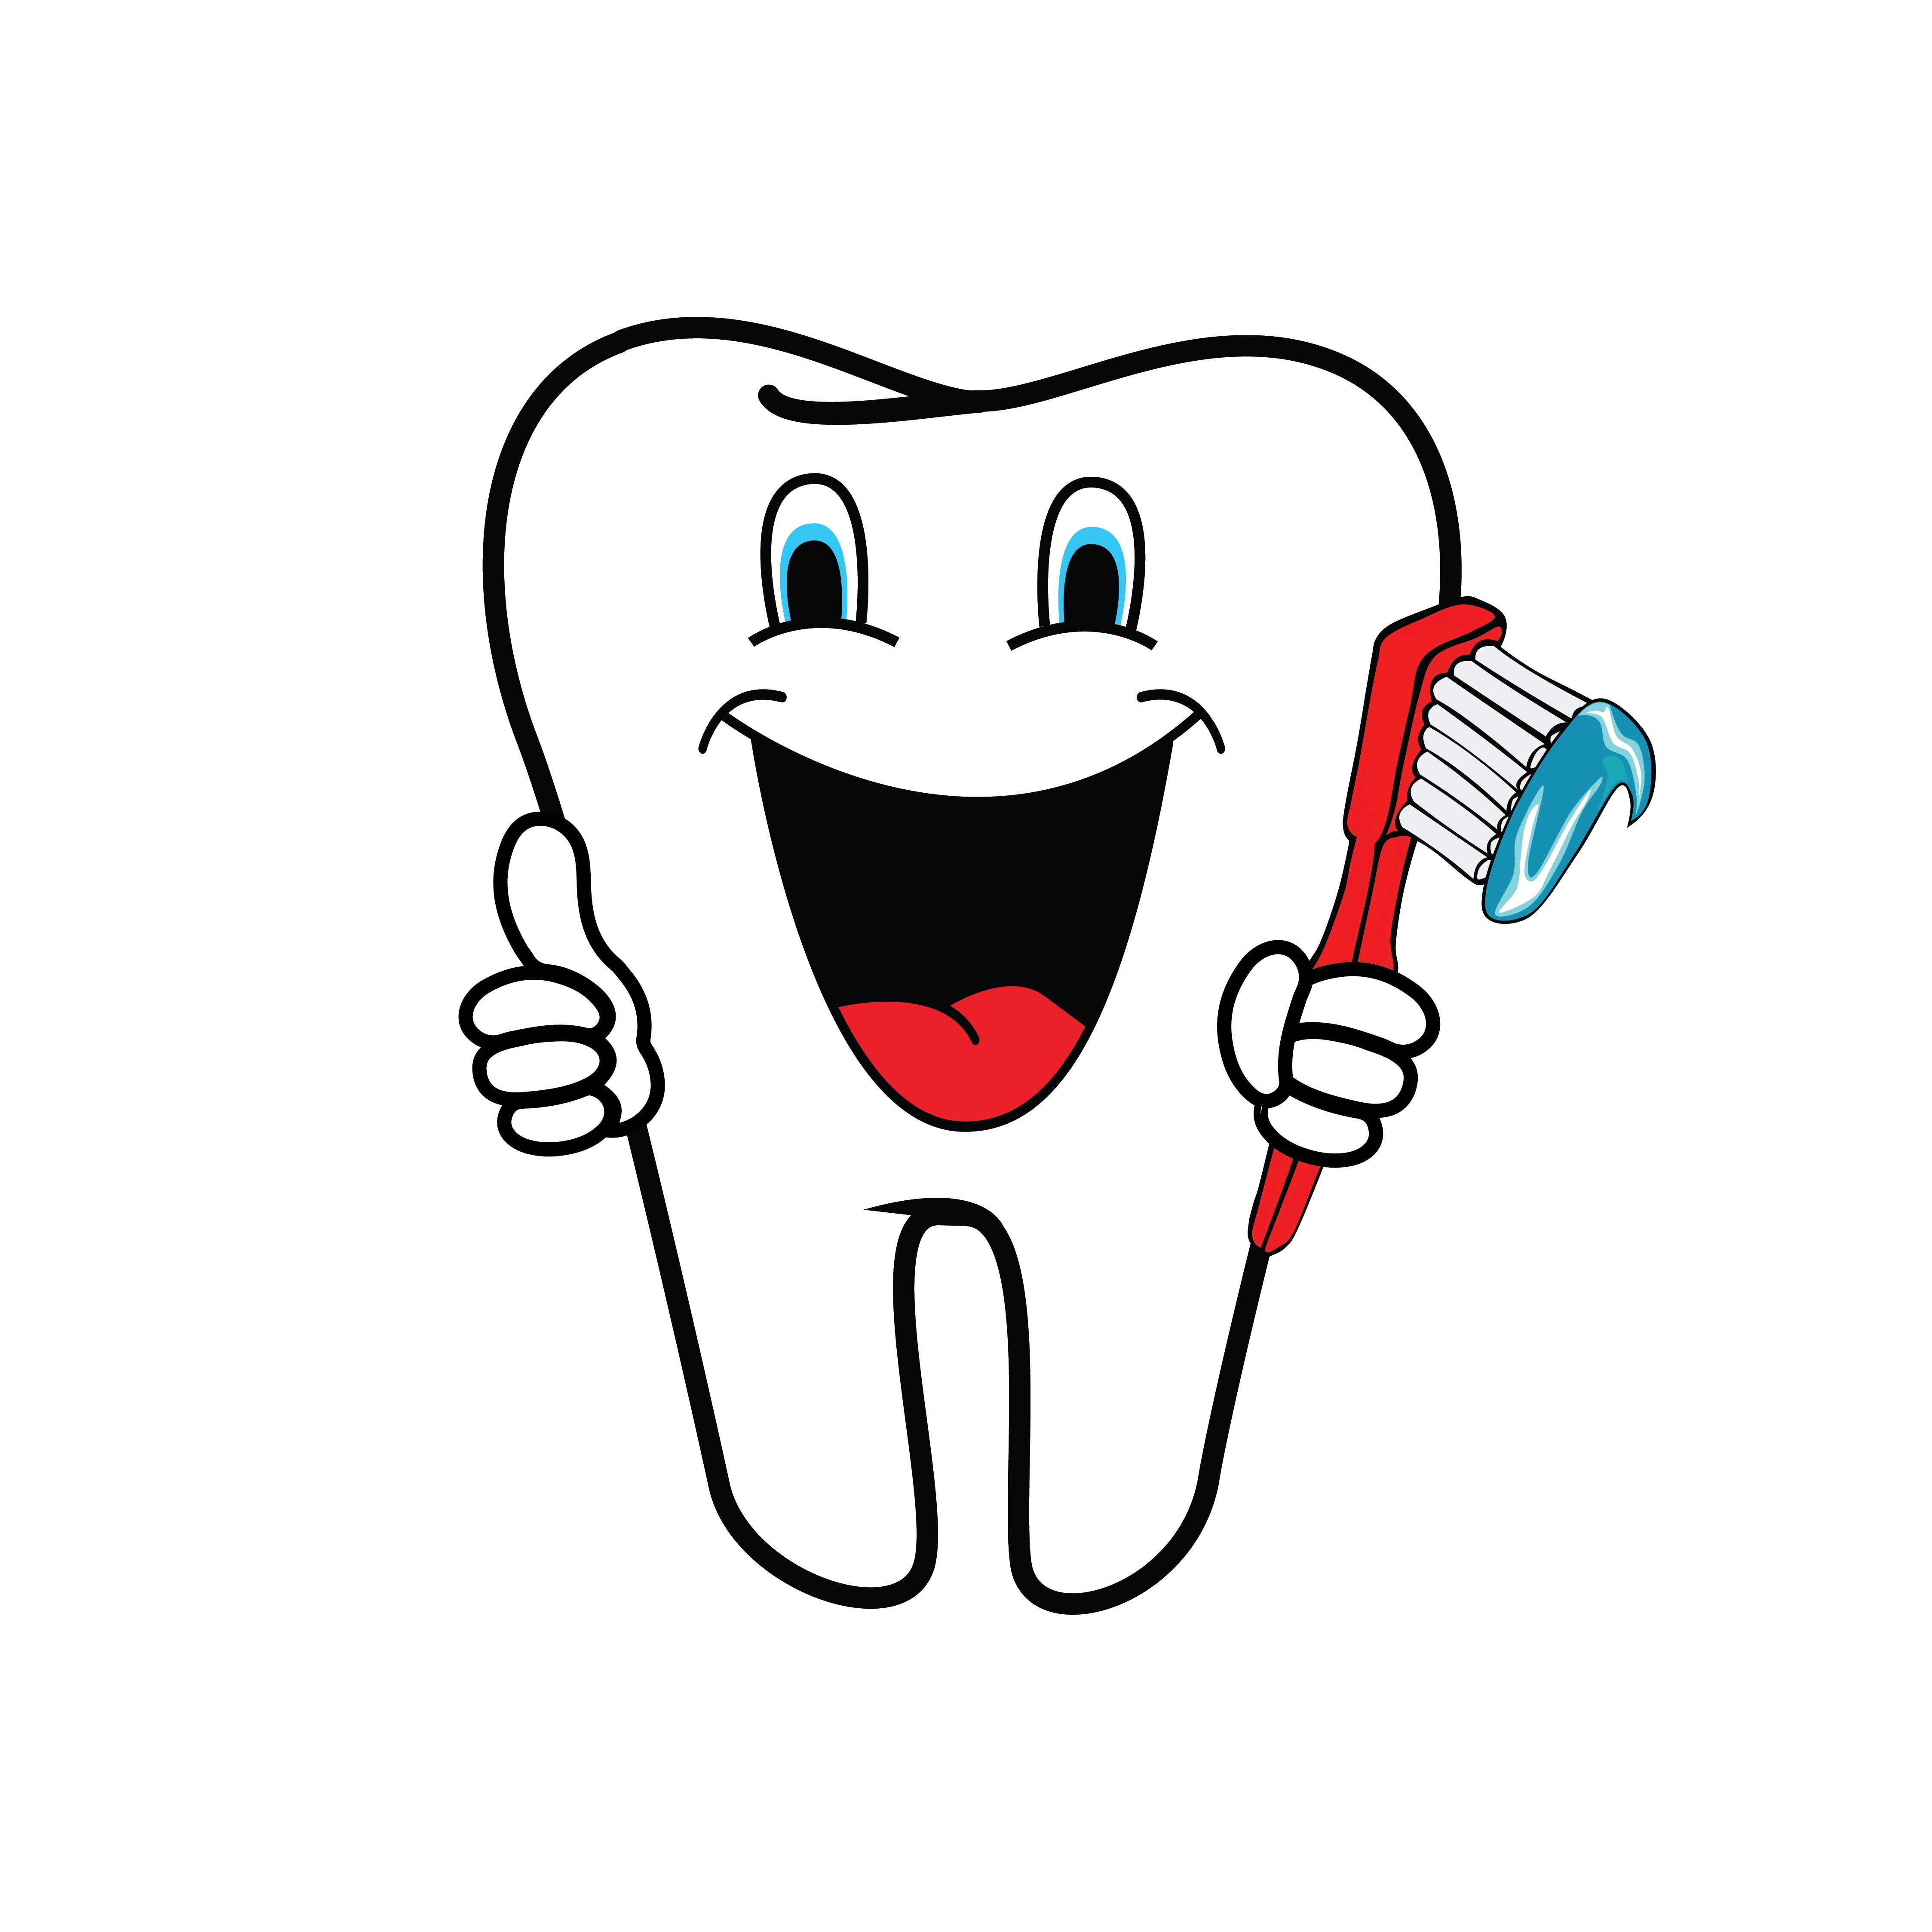 free stock photo of clipart tooth dental health dentist rh pexels com clip art tooth decay clip art toothbrush and toothpaste